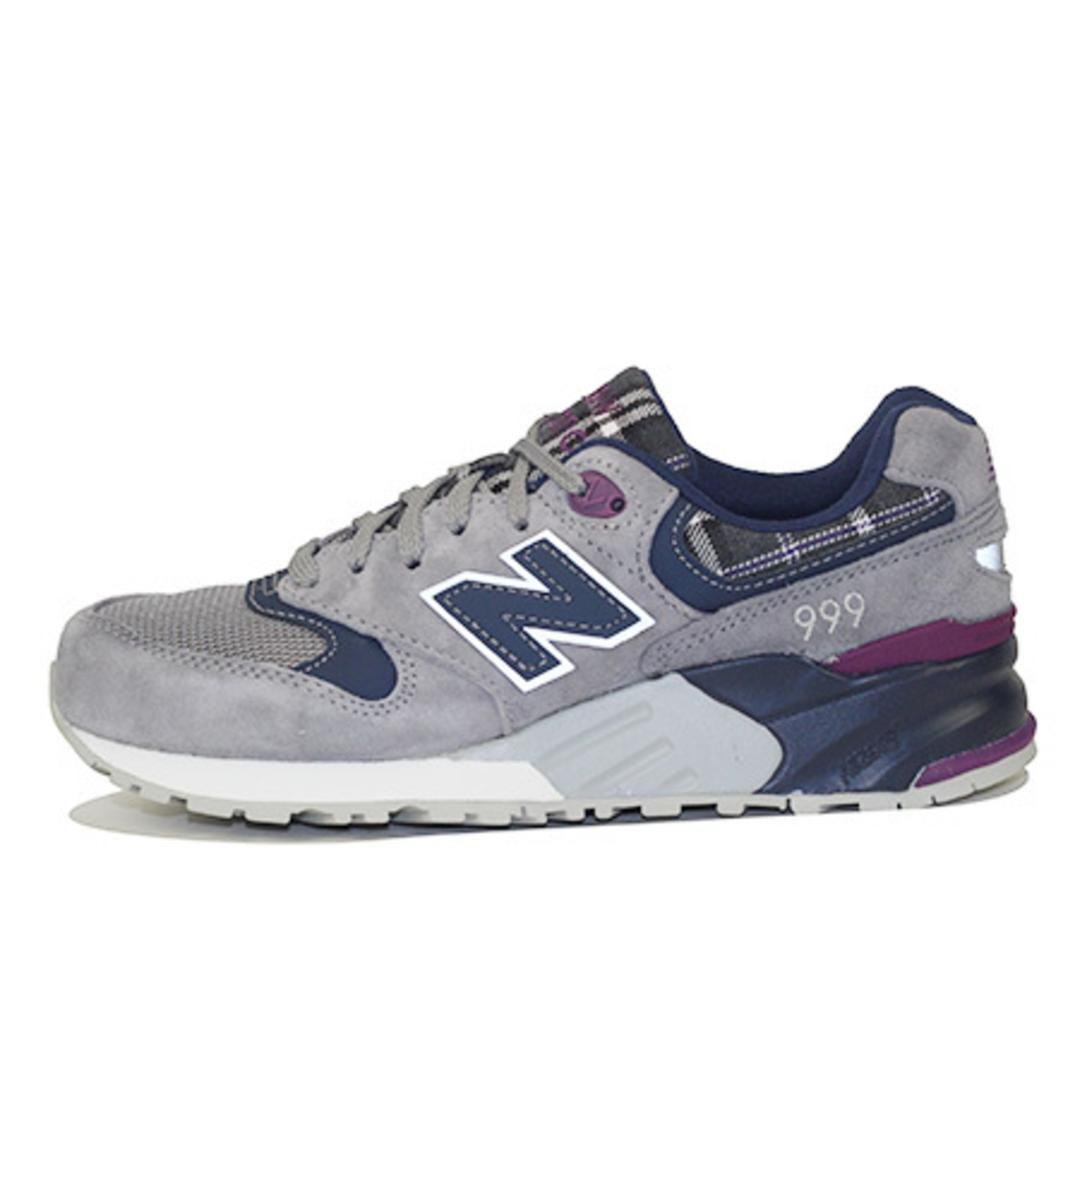 New Balance for Women: 999 Tartan Sneakers